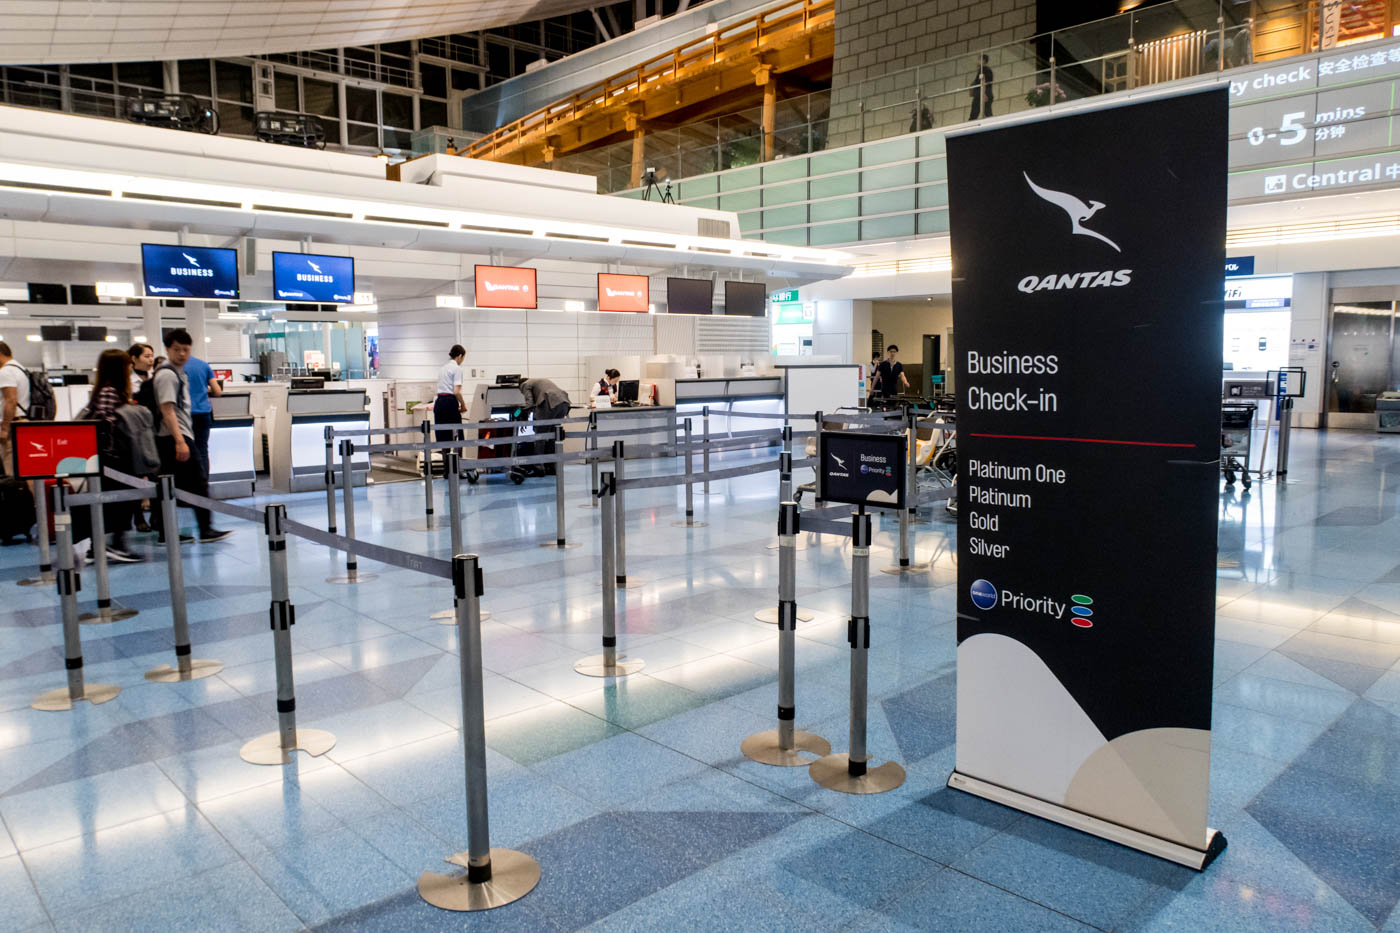 Qantas Check-in Area at Haneda